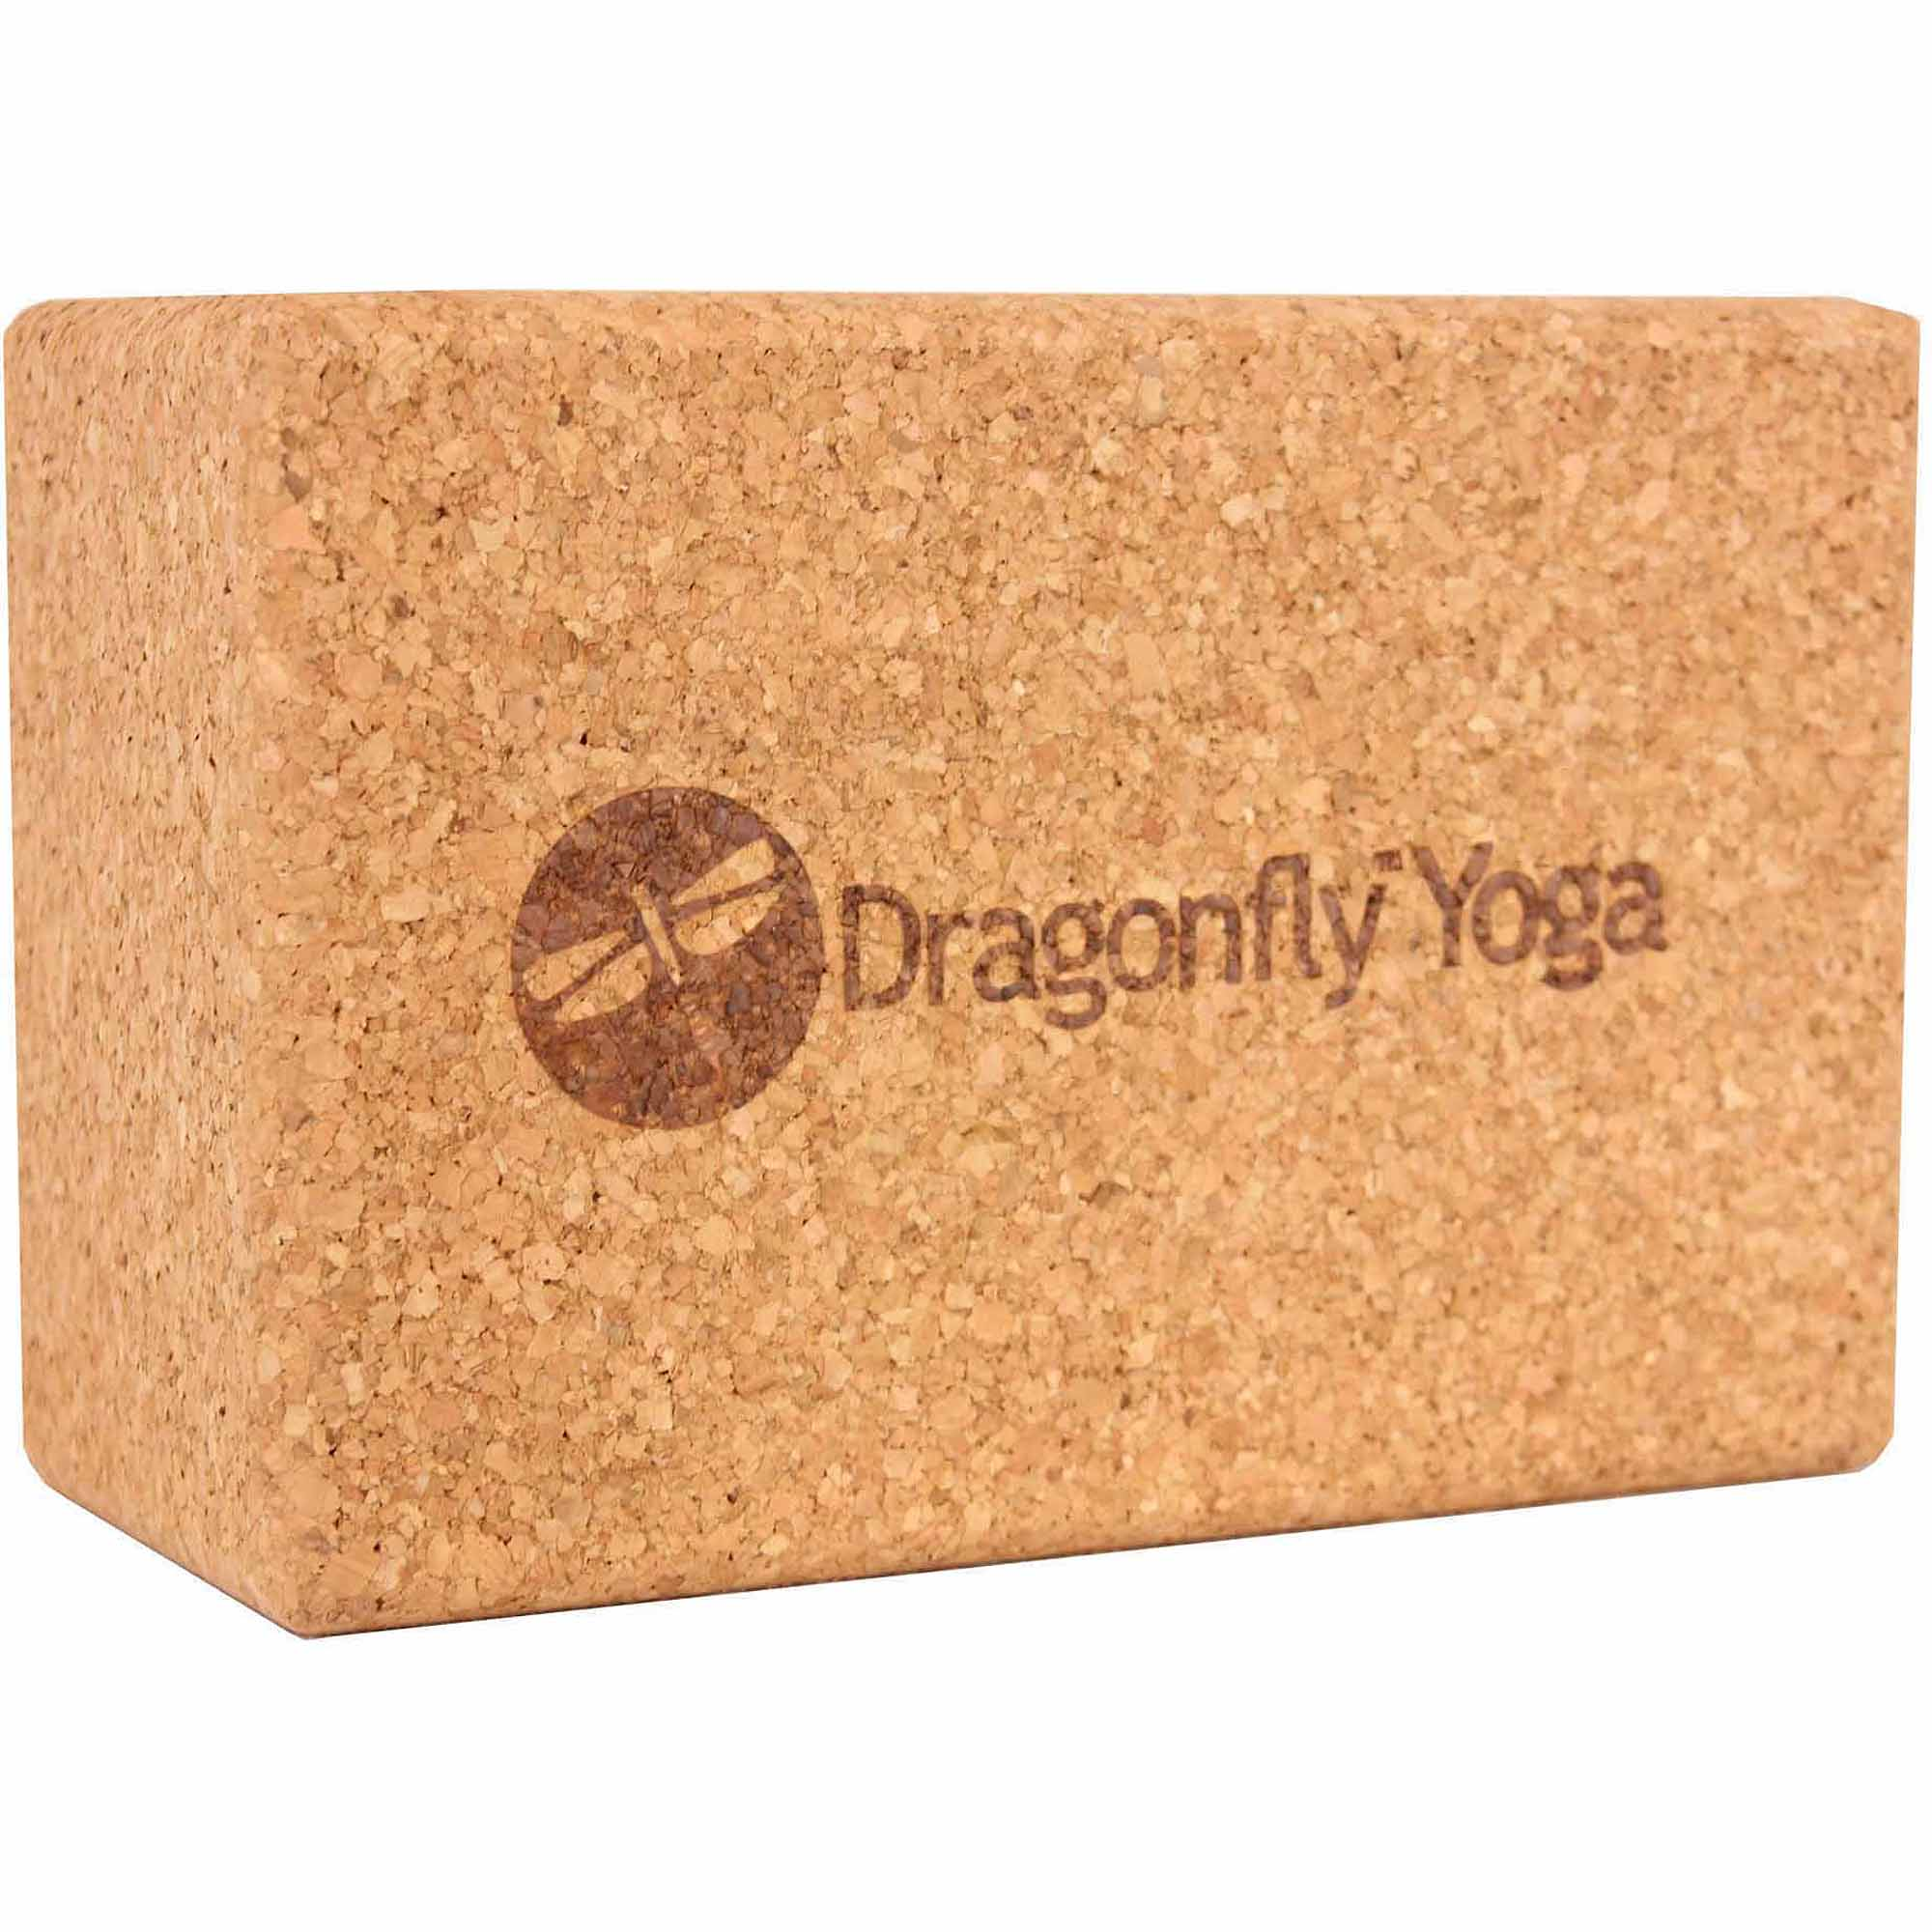 "Dragonfly Yoga 4"" Cork Yoga Block"